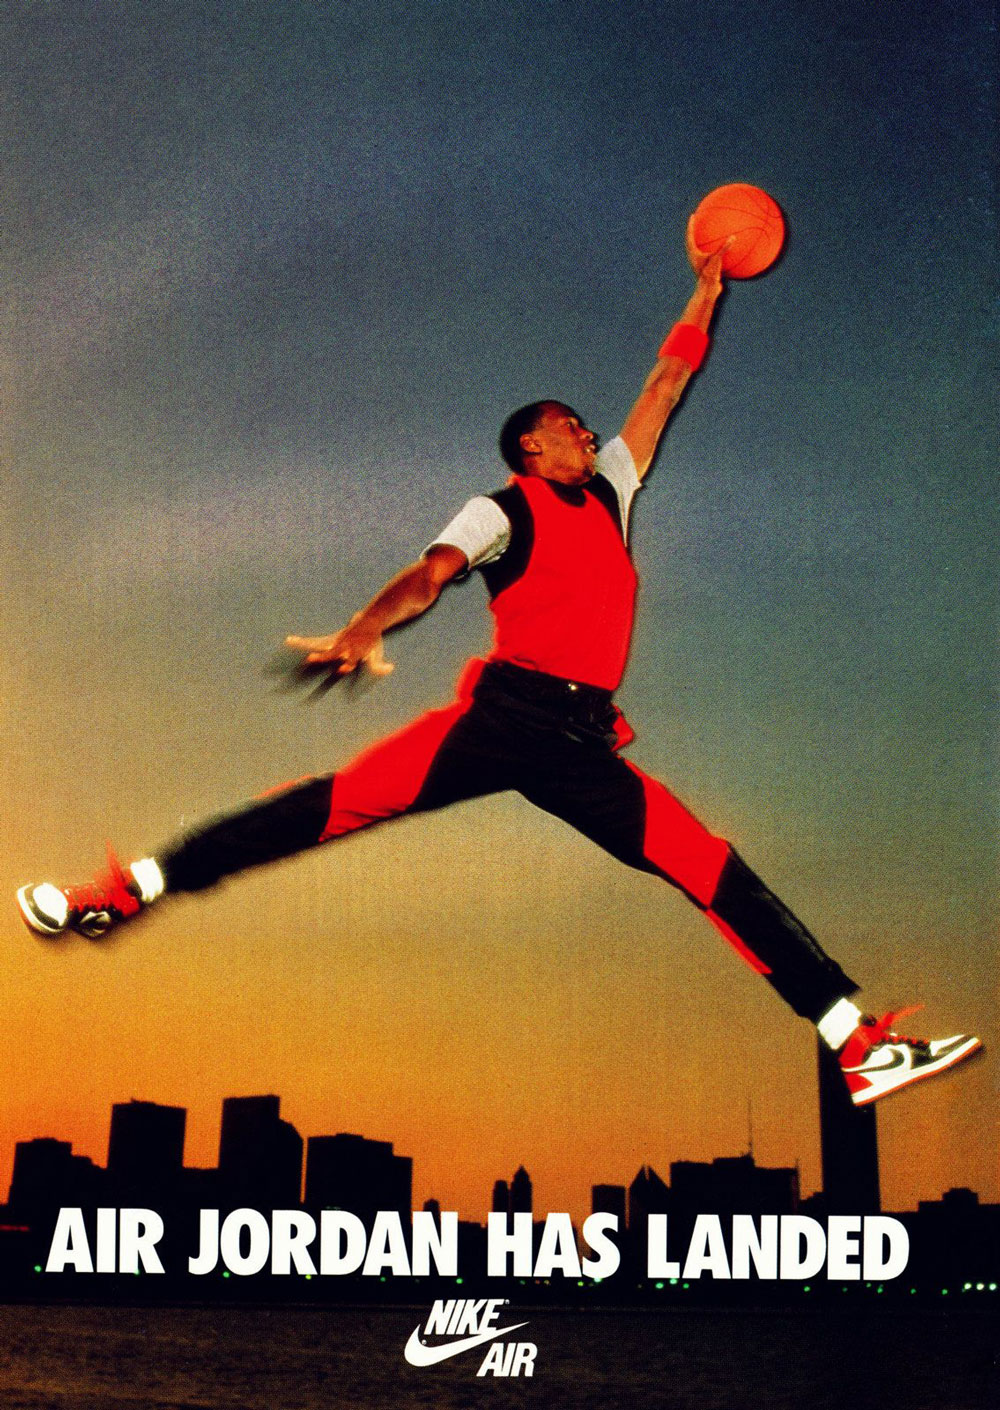 Nike Air Jordan An Icon That Defines Yesterday Today And Tomorrow